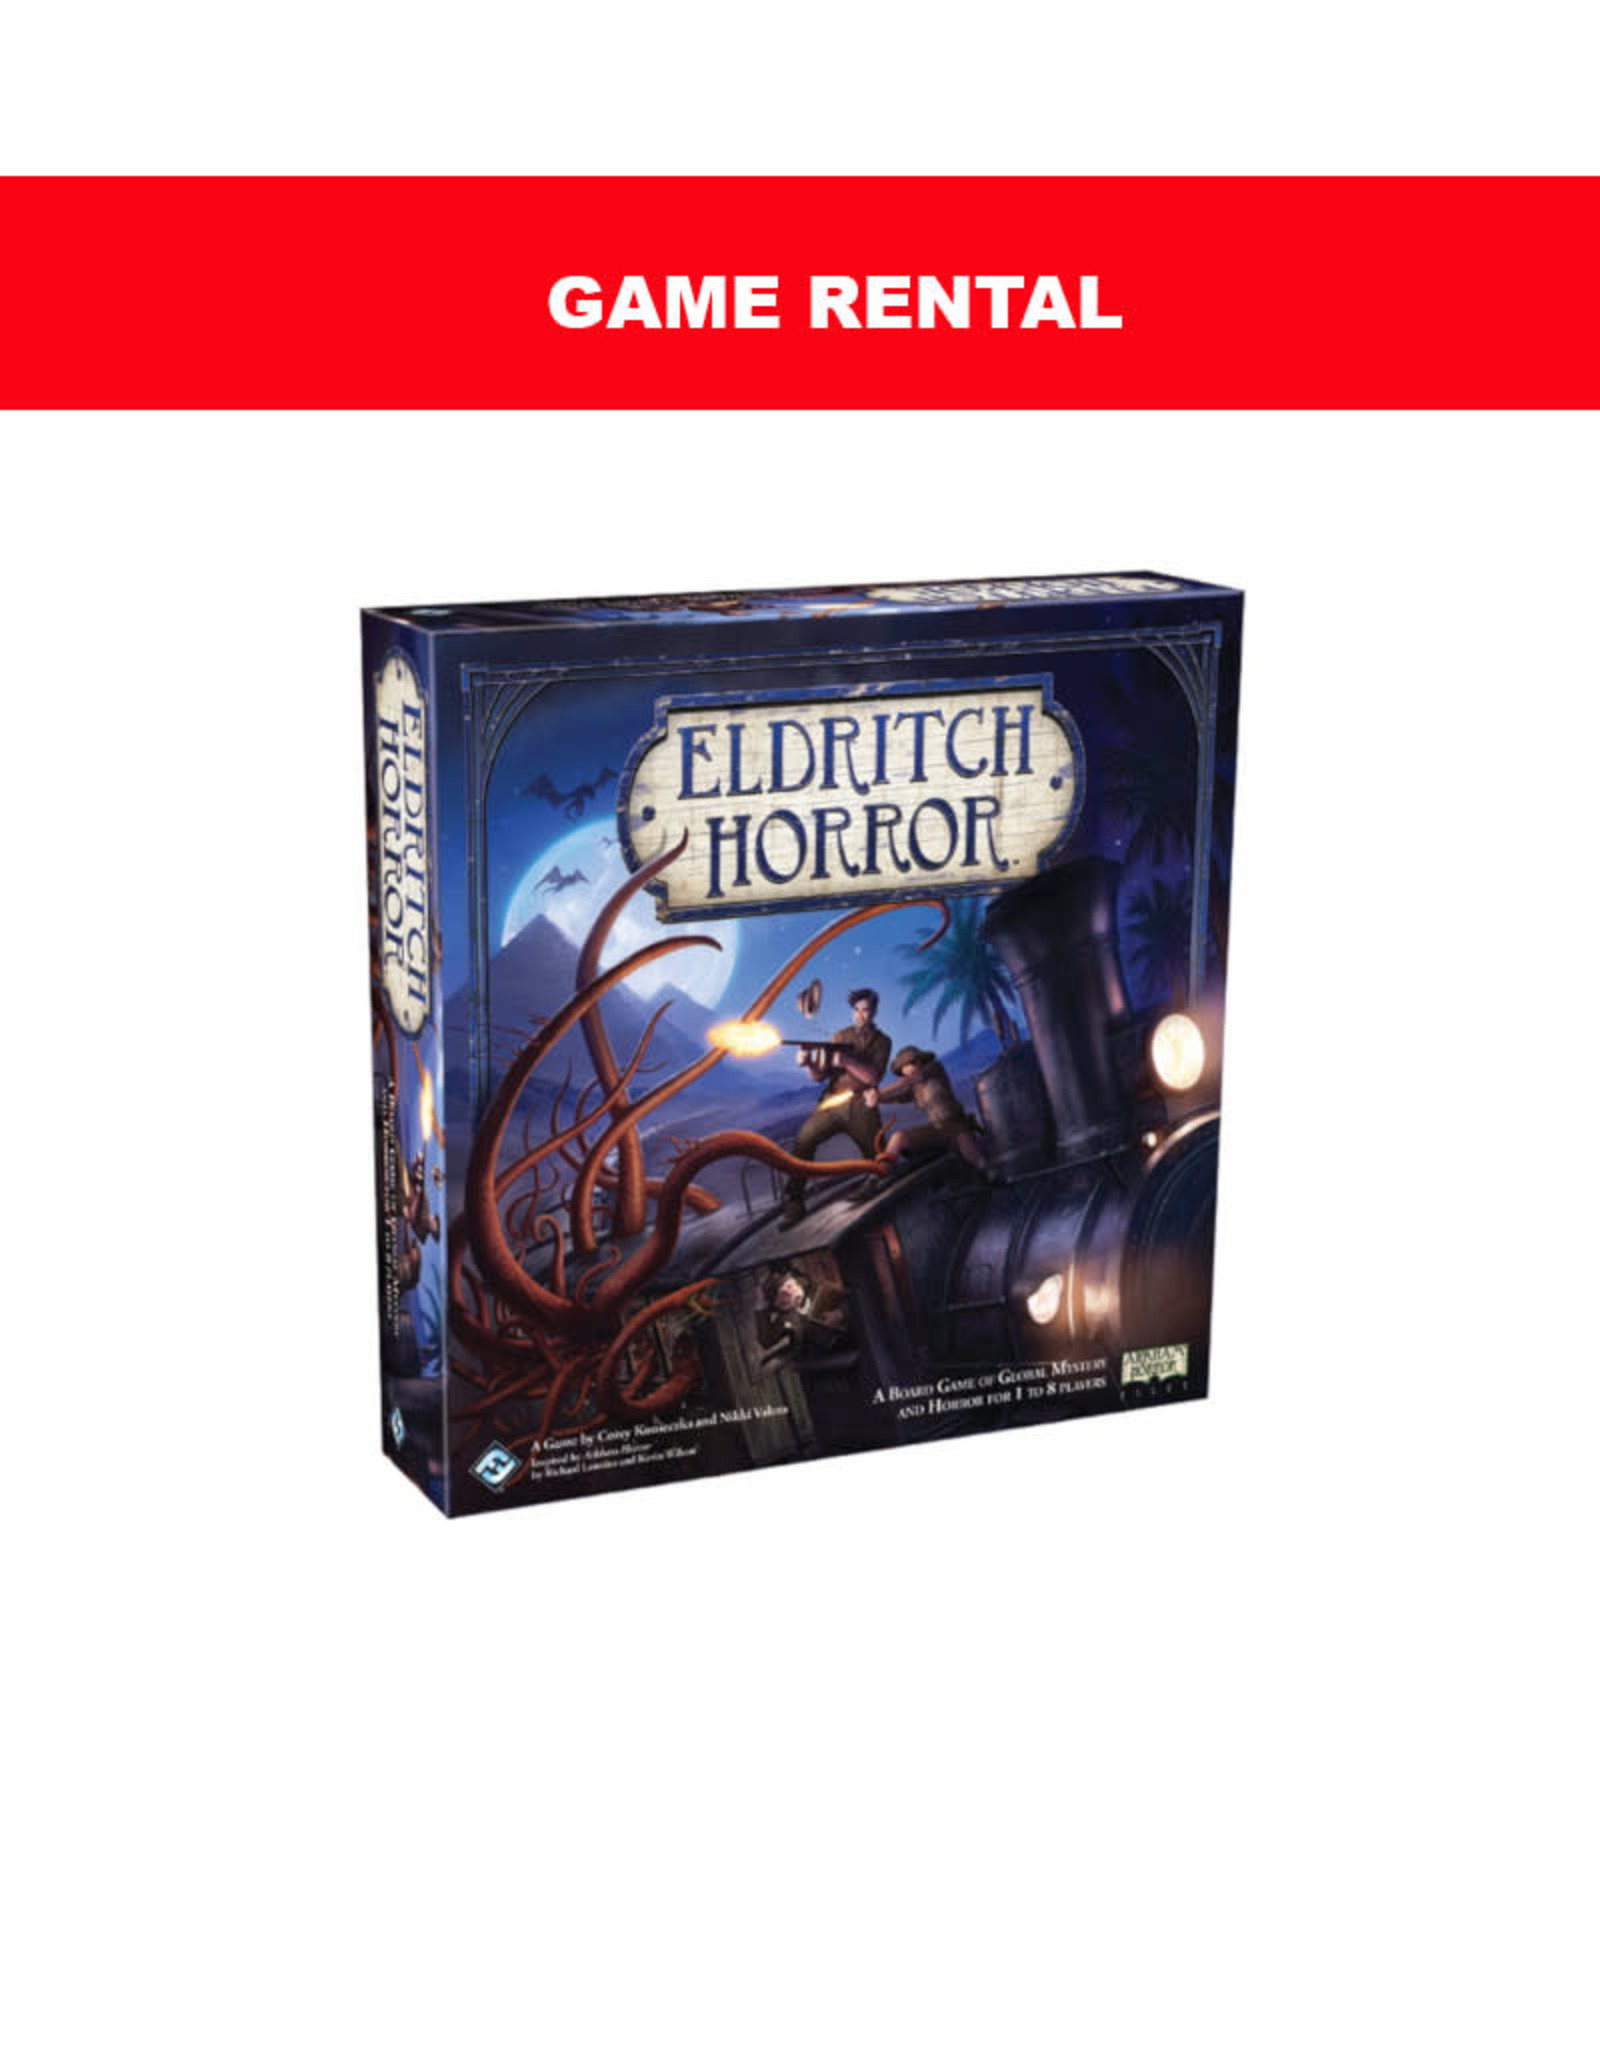 (RENT) Eldritch Horror for a Day. Love It! Buy It!